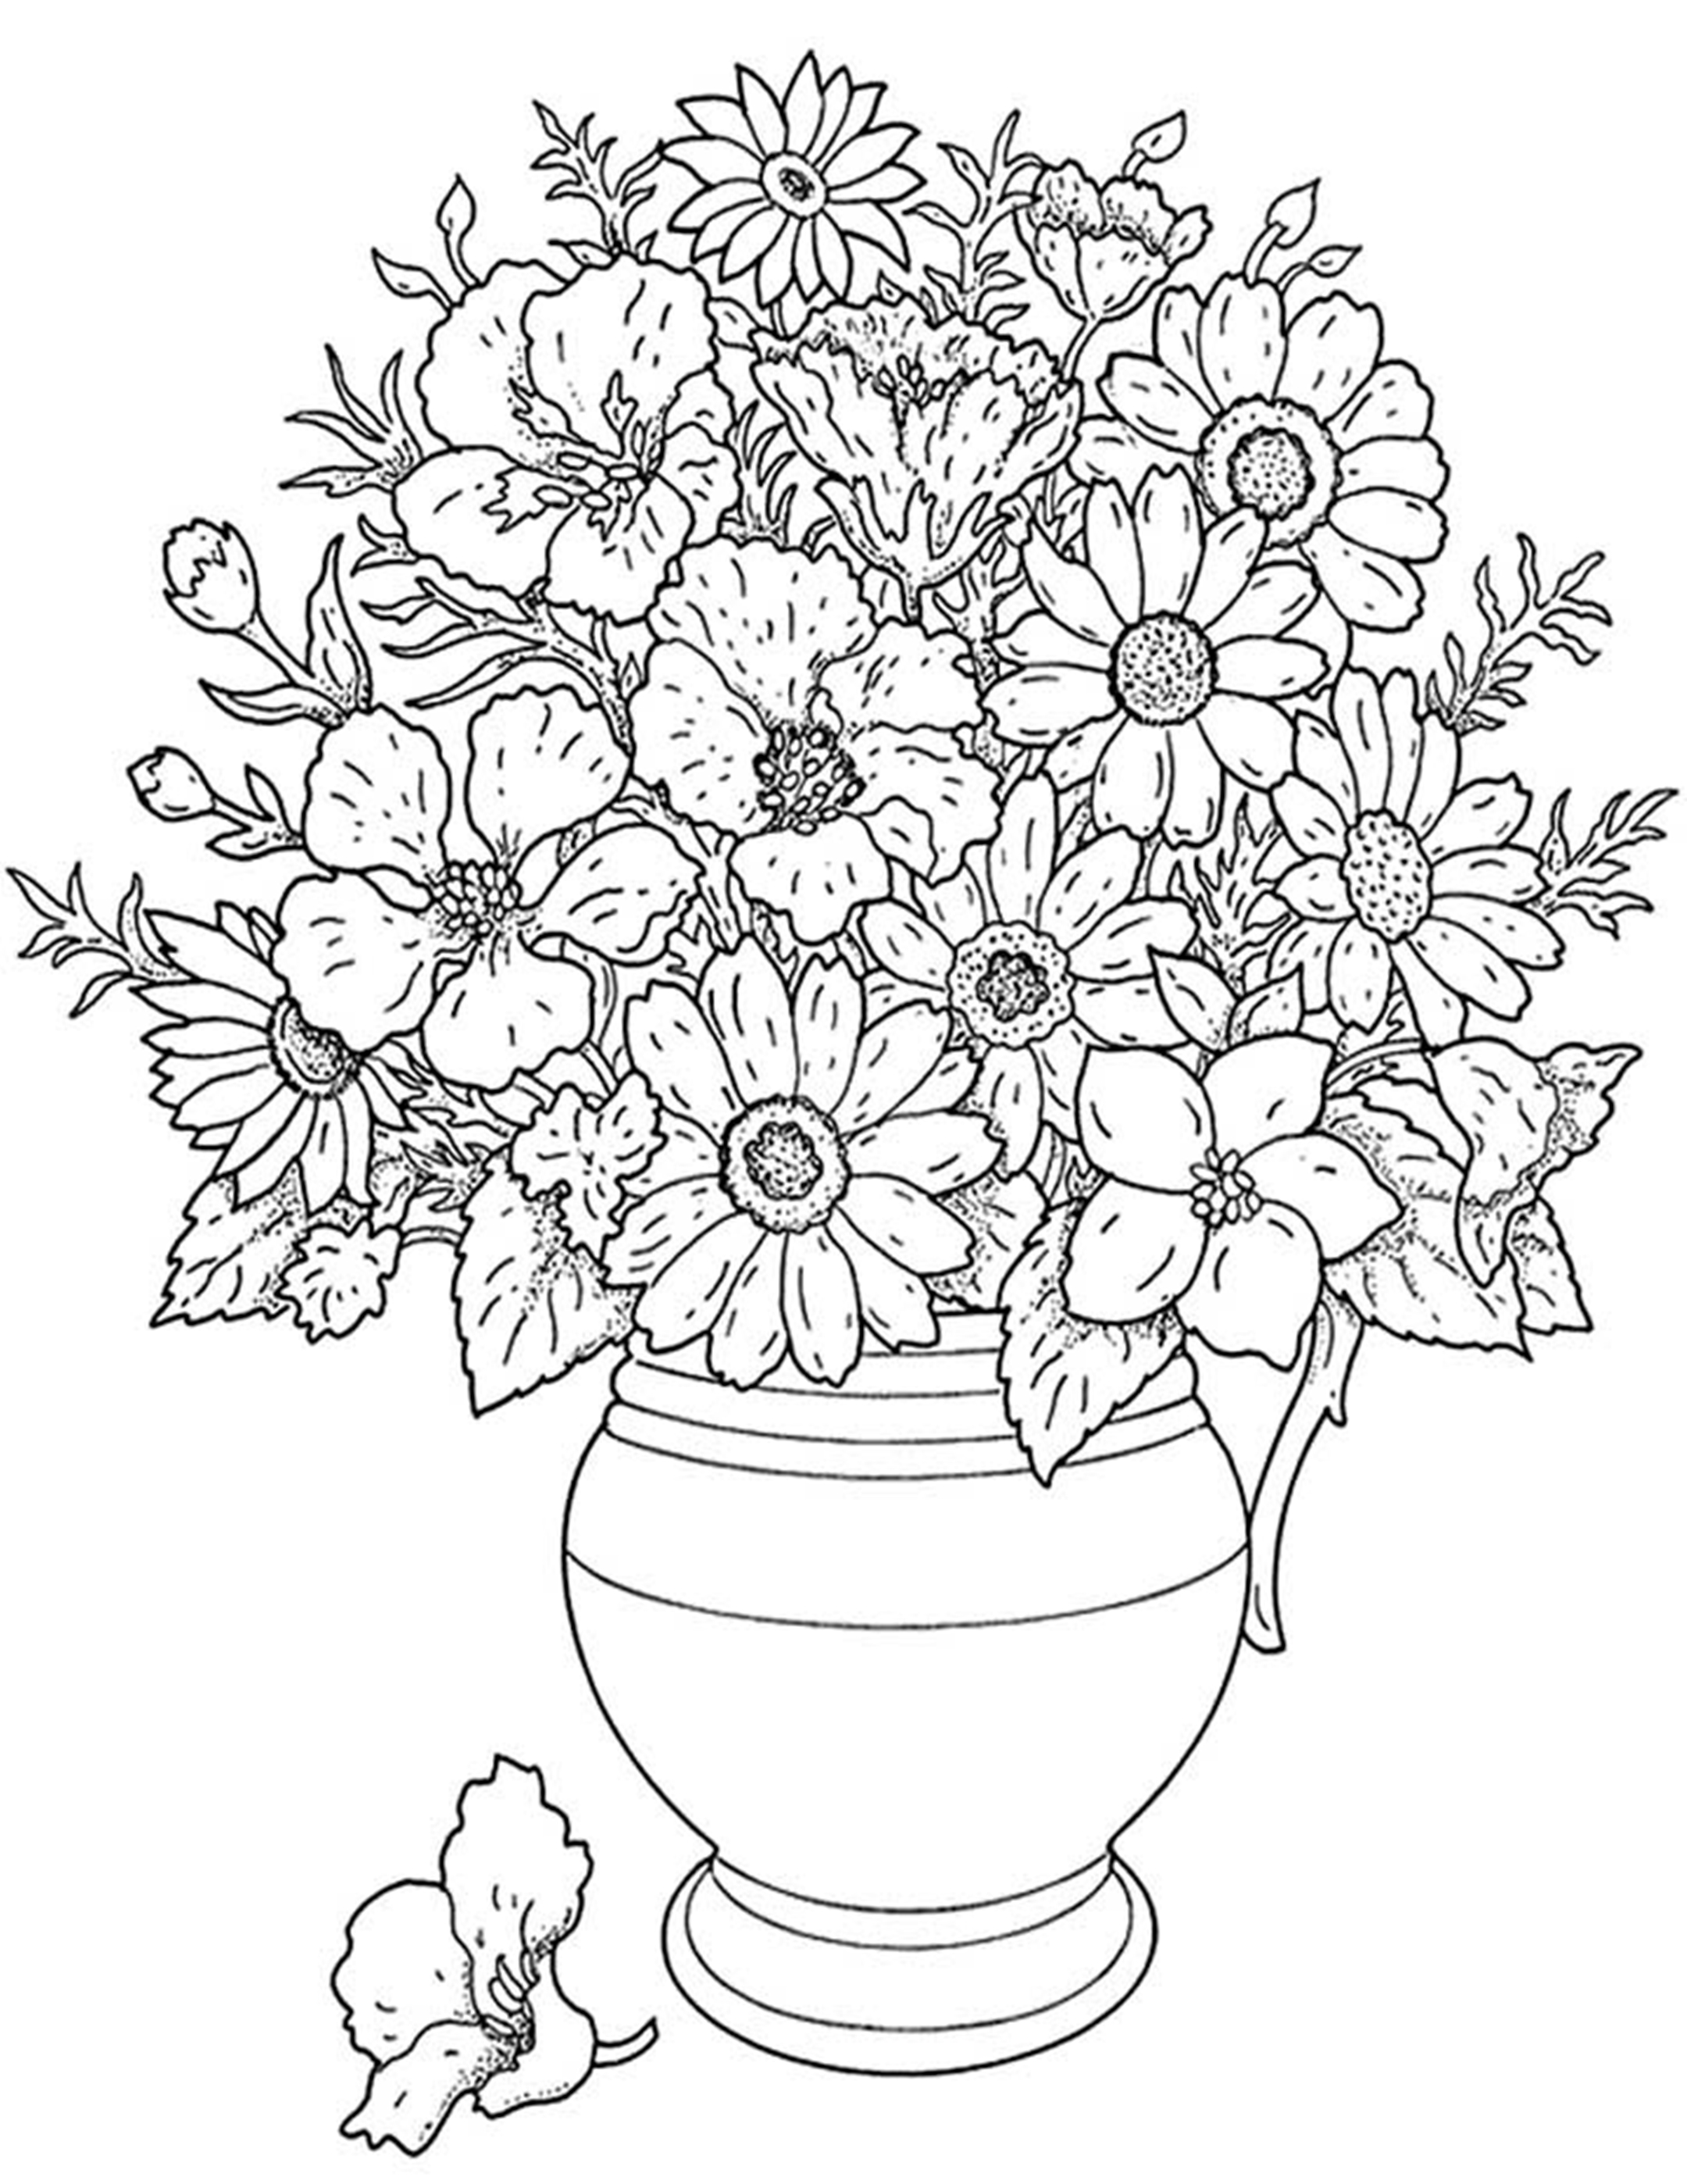 flowers to color and print free easy to print flower coloring pages tulamama to print and color flowers